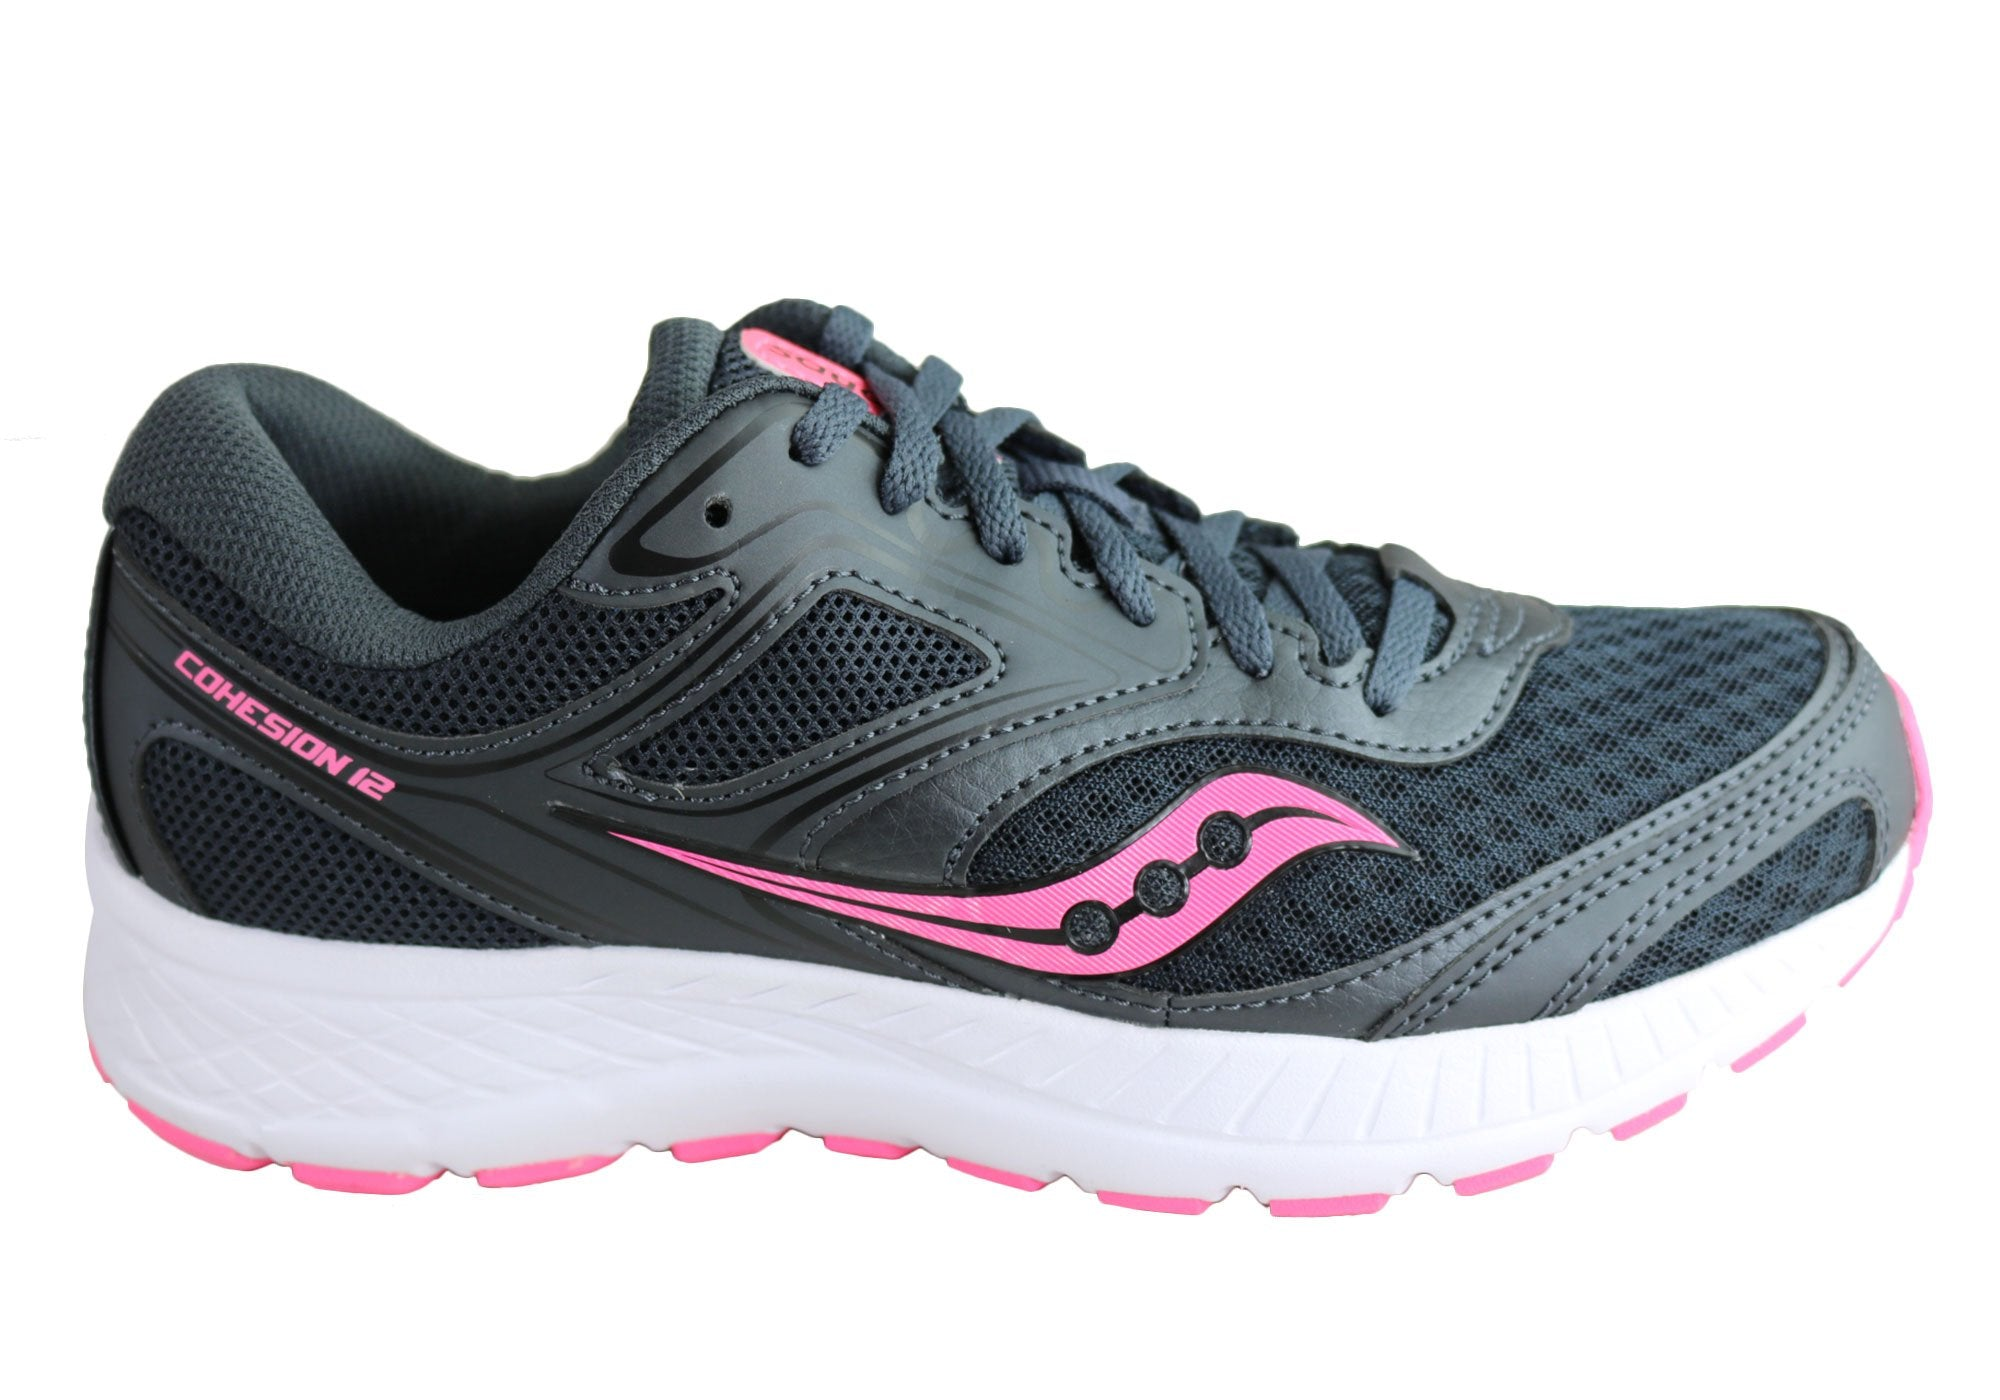 NEW SAUCONY WOMENS INTEGRITY ST2 D WIDTH WIDE FITTING WALKING SHOES